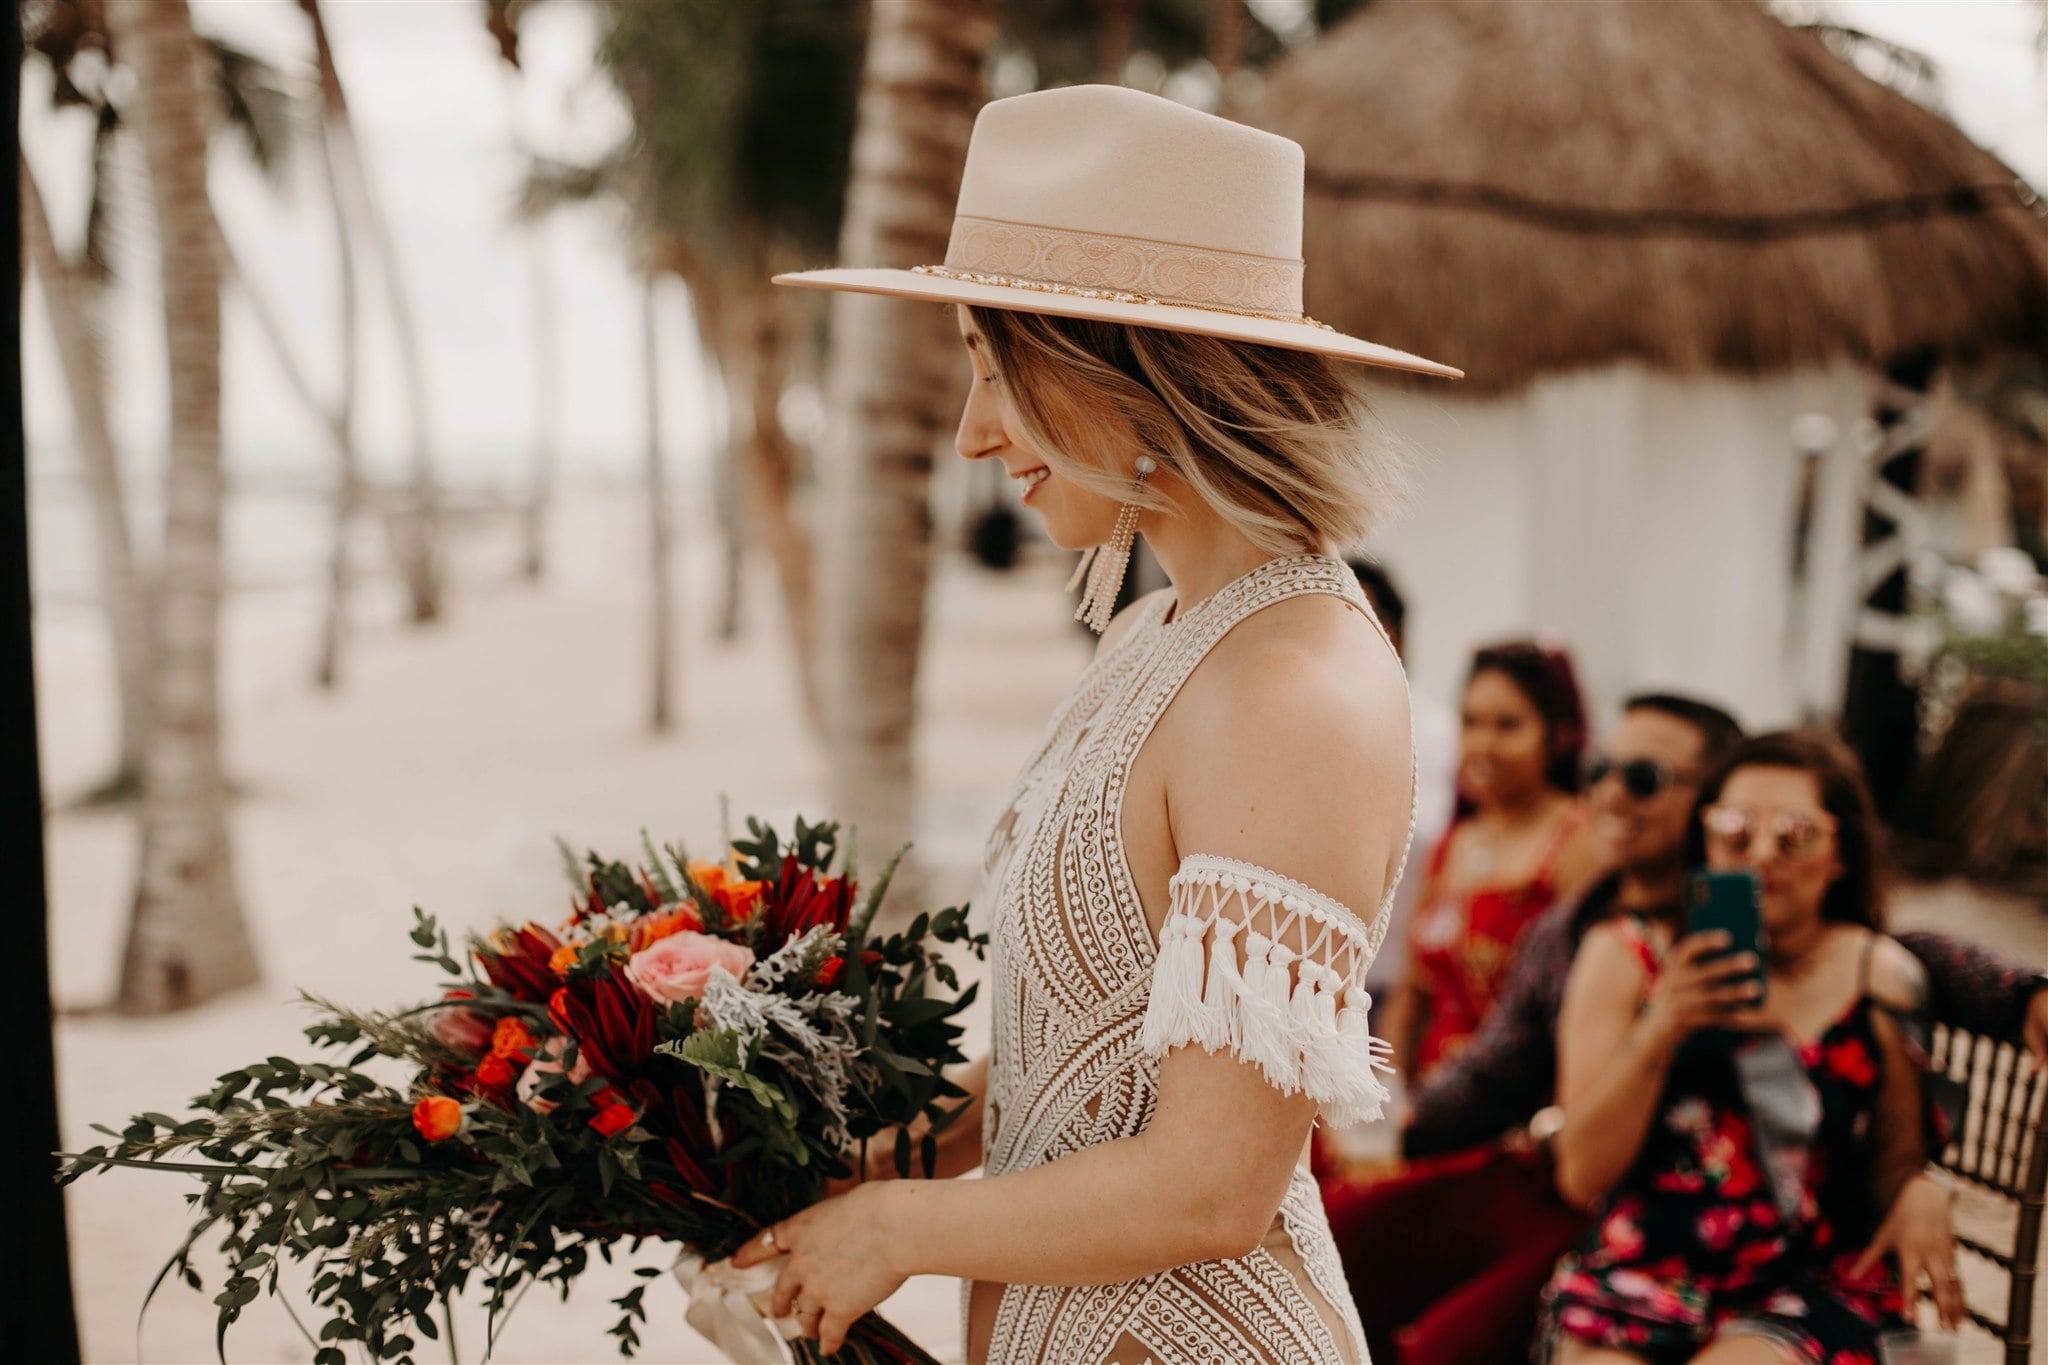 Allison & Manny's Gorgeous Bohemian Elopement in Cancun, Mexico, Photography by Amber Dawn Photography for Luxury Destination Wedding Blog Adriana Weddings